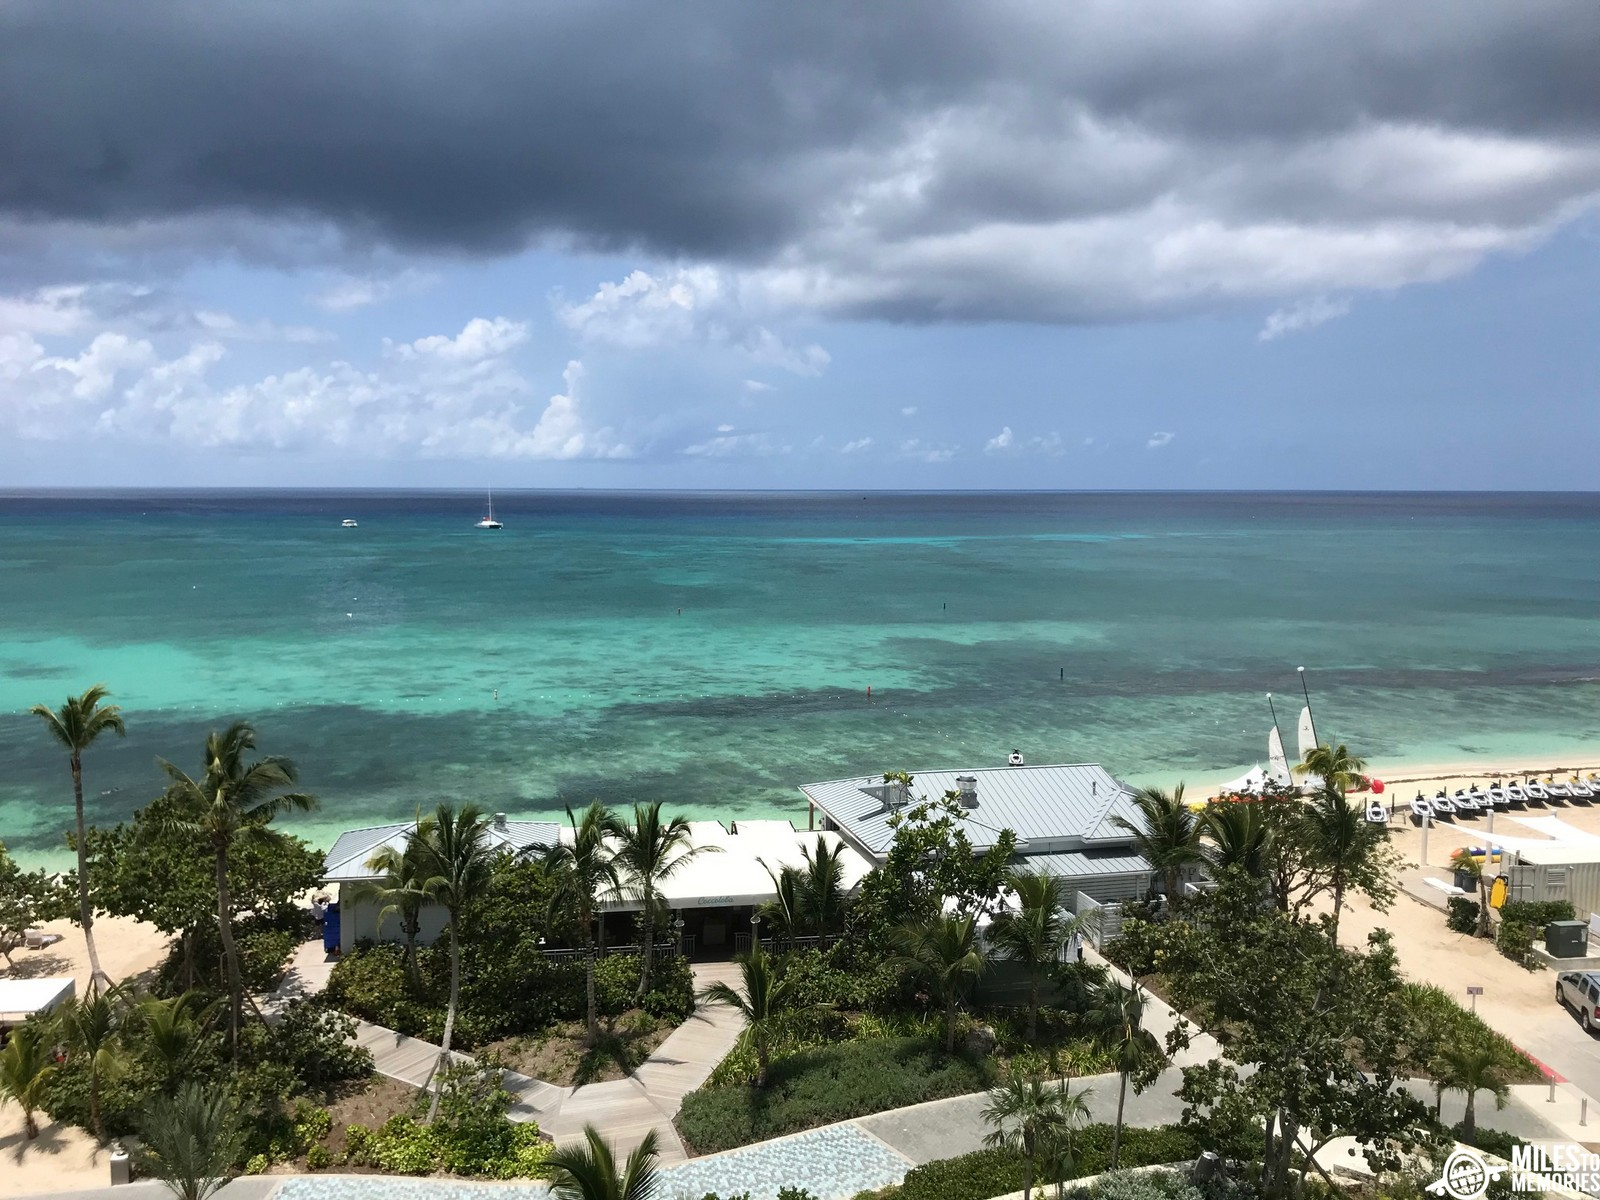 Hotel Review: Grand Cayman IHG's Kimpton Seafire Resort and Spa